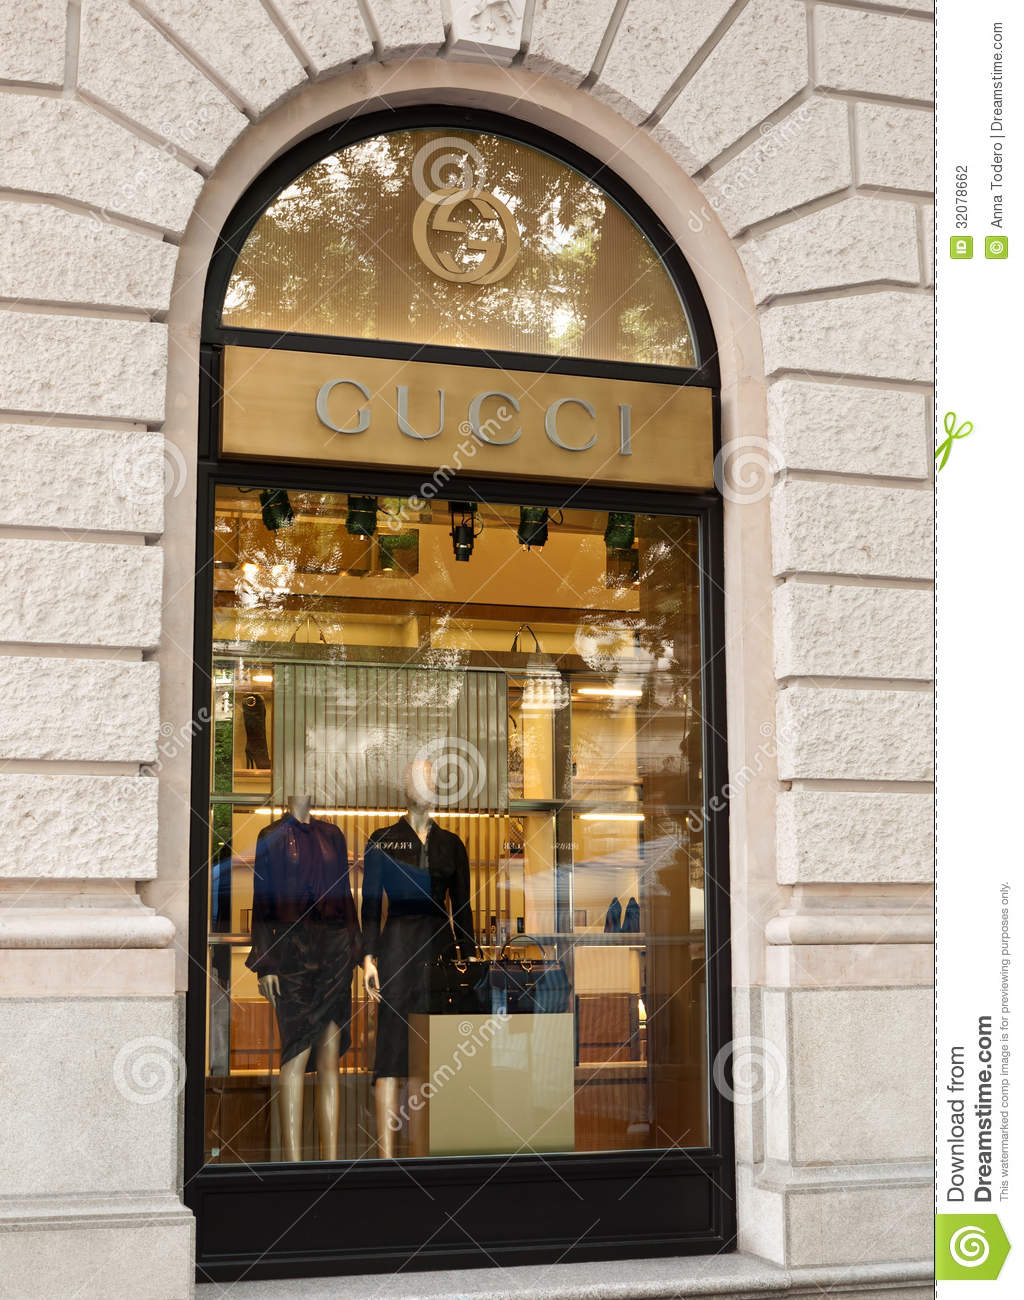 Gucci clothing store Cheap online clothing stores